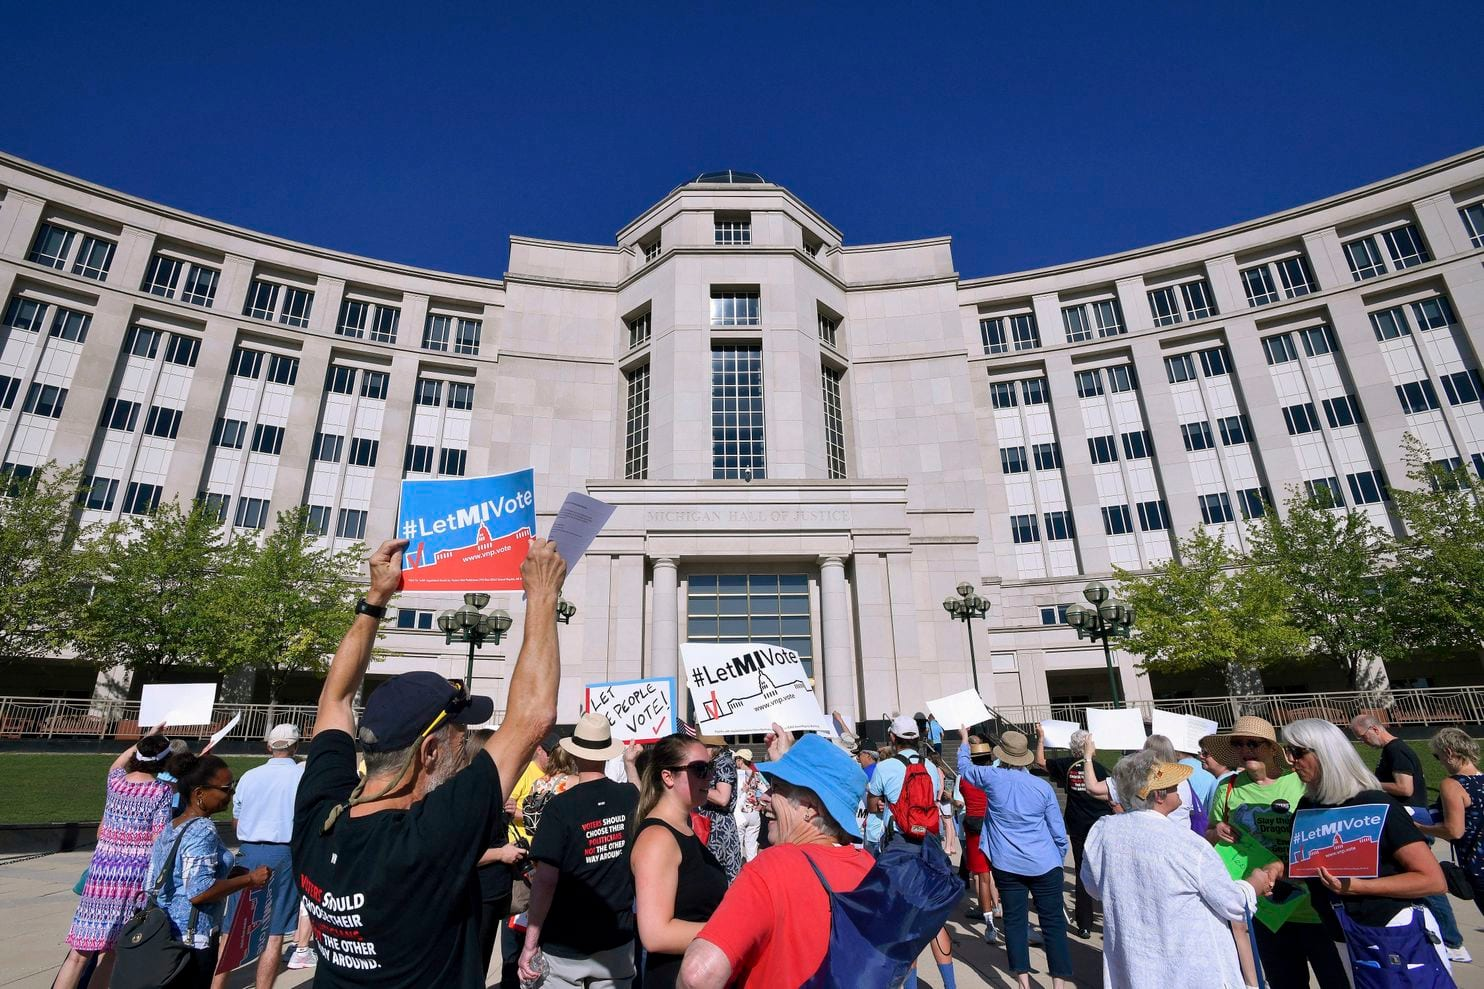 Demonstrators rally outside the Michigan Hall of Justice in Lansing, Mich., where the state's Supreme Court heard arguments in July about whether voters in November would be able to pass a constitutional amendment that would change how the state's voting